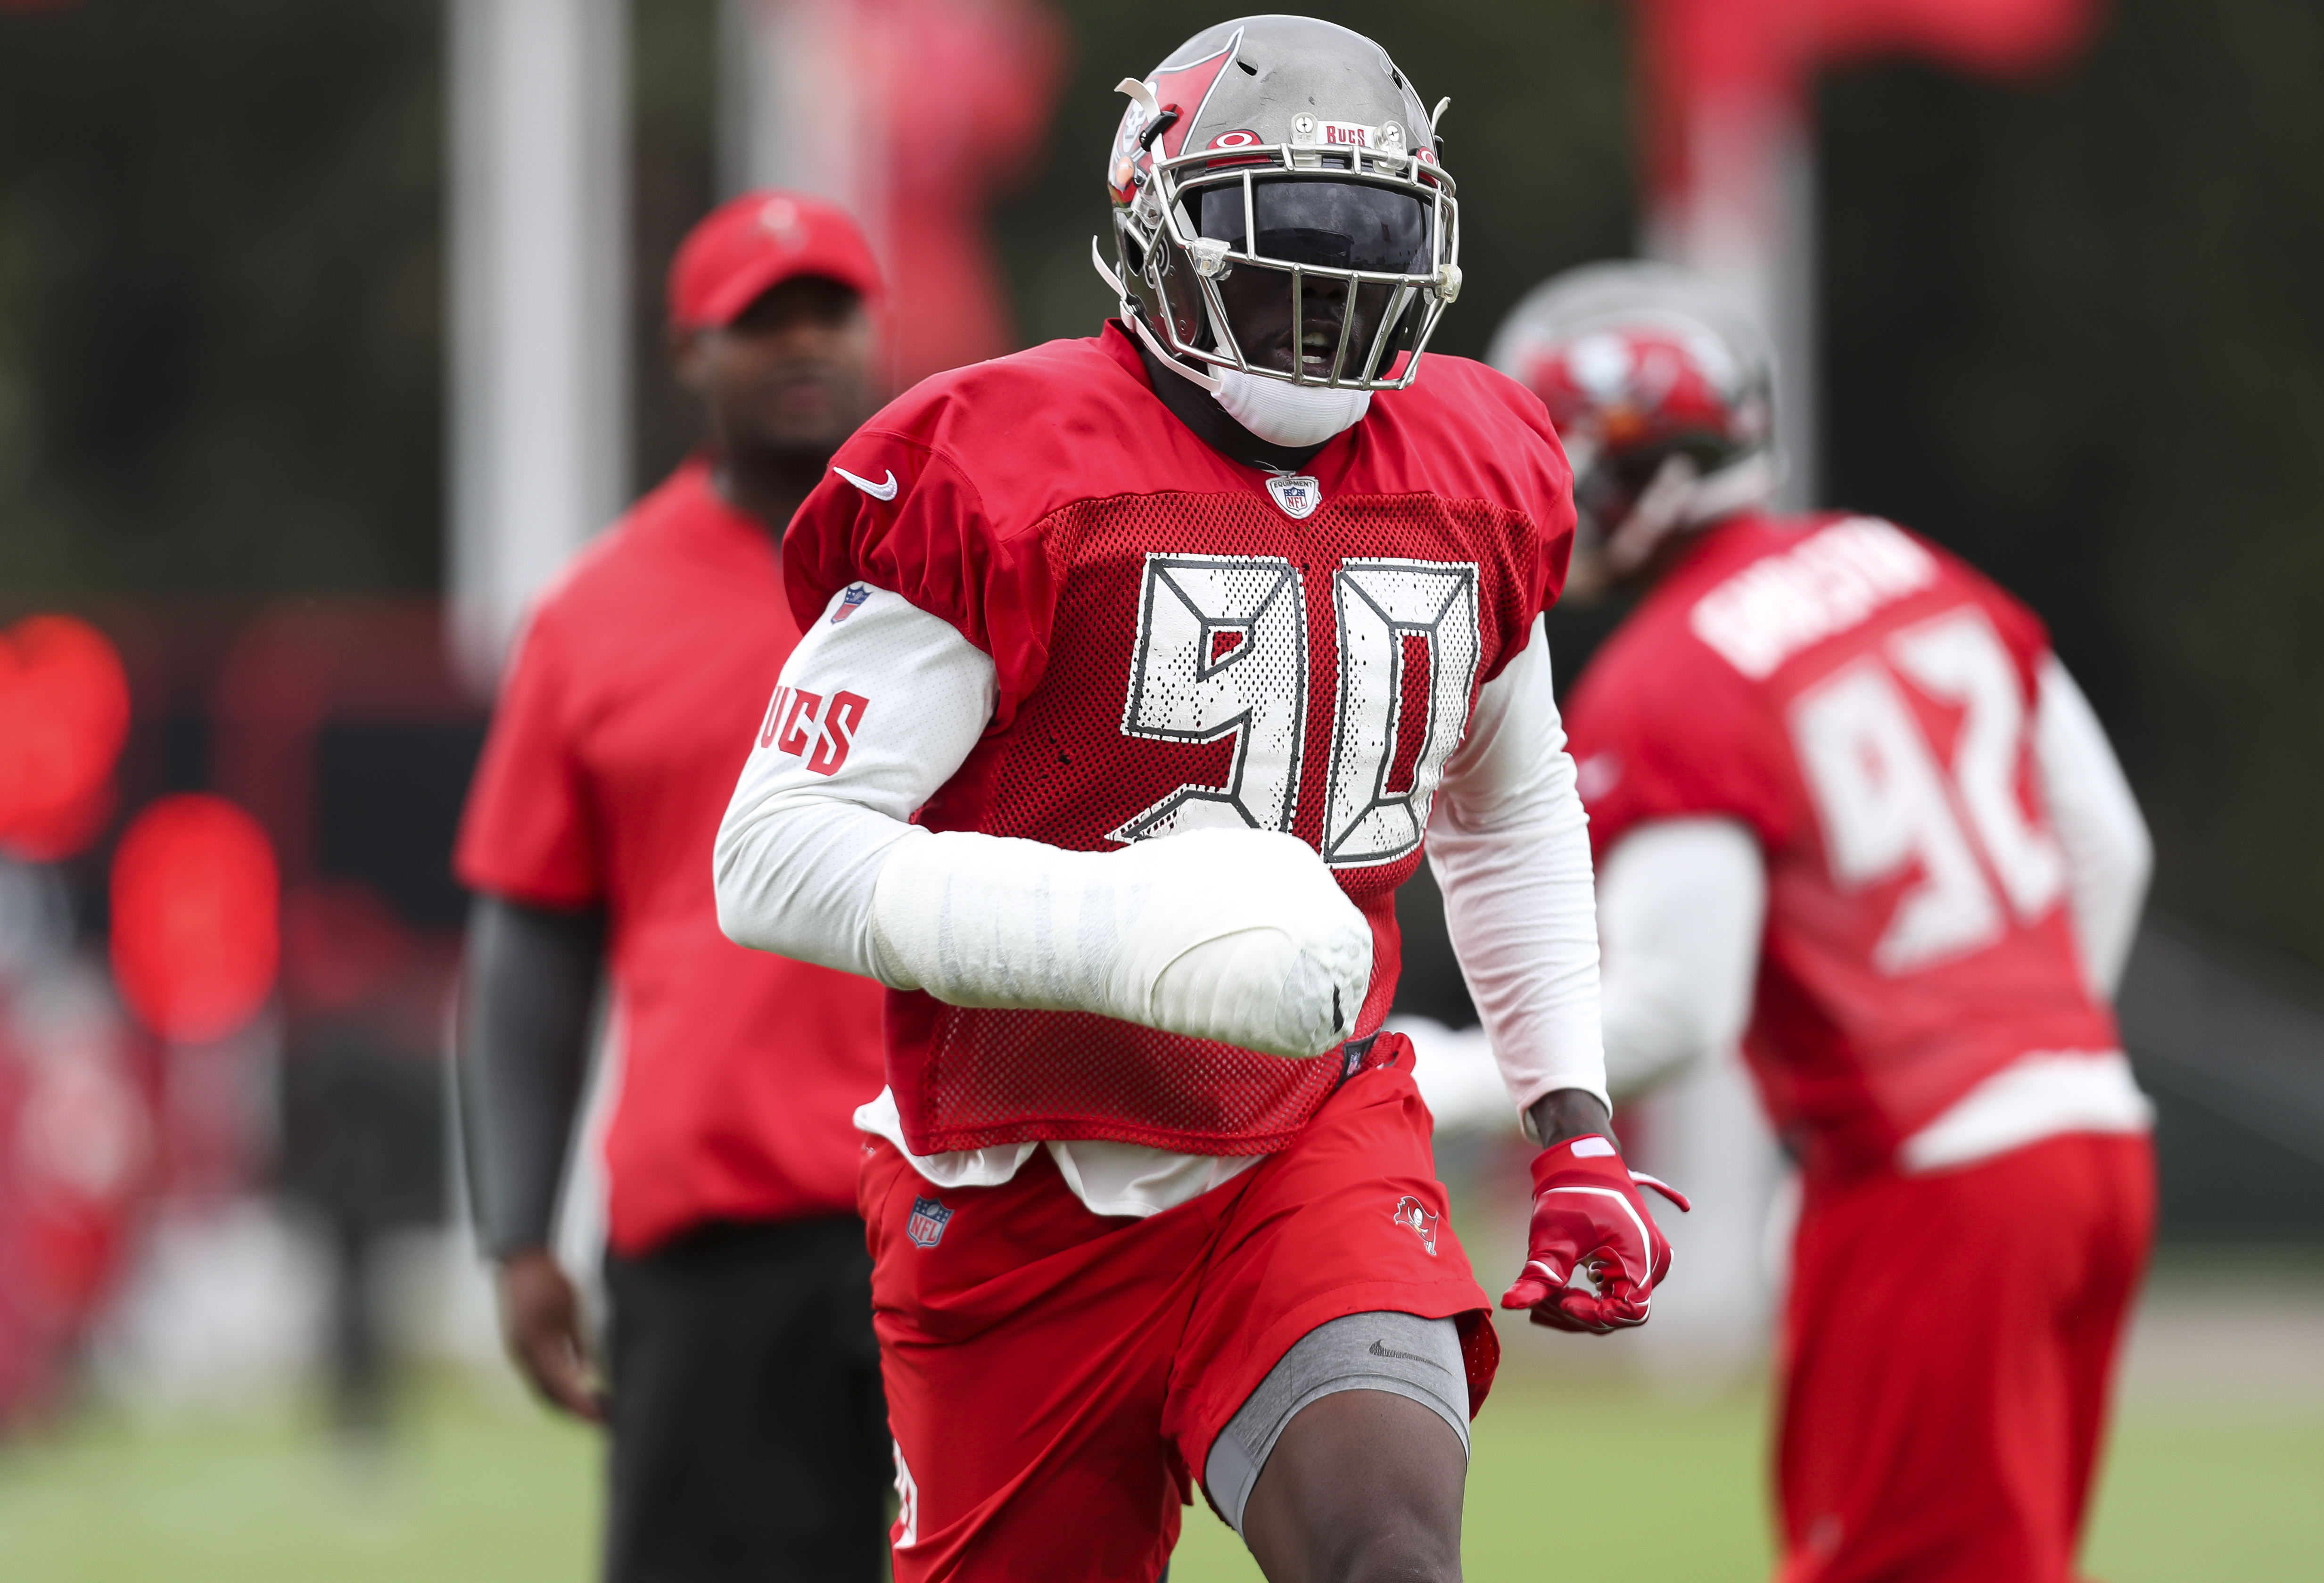 cheap for discount 641c5 0d1ad Bucs lineman Jason Pierre-Paul practices with club on right ...